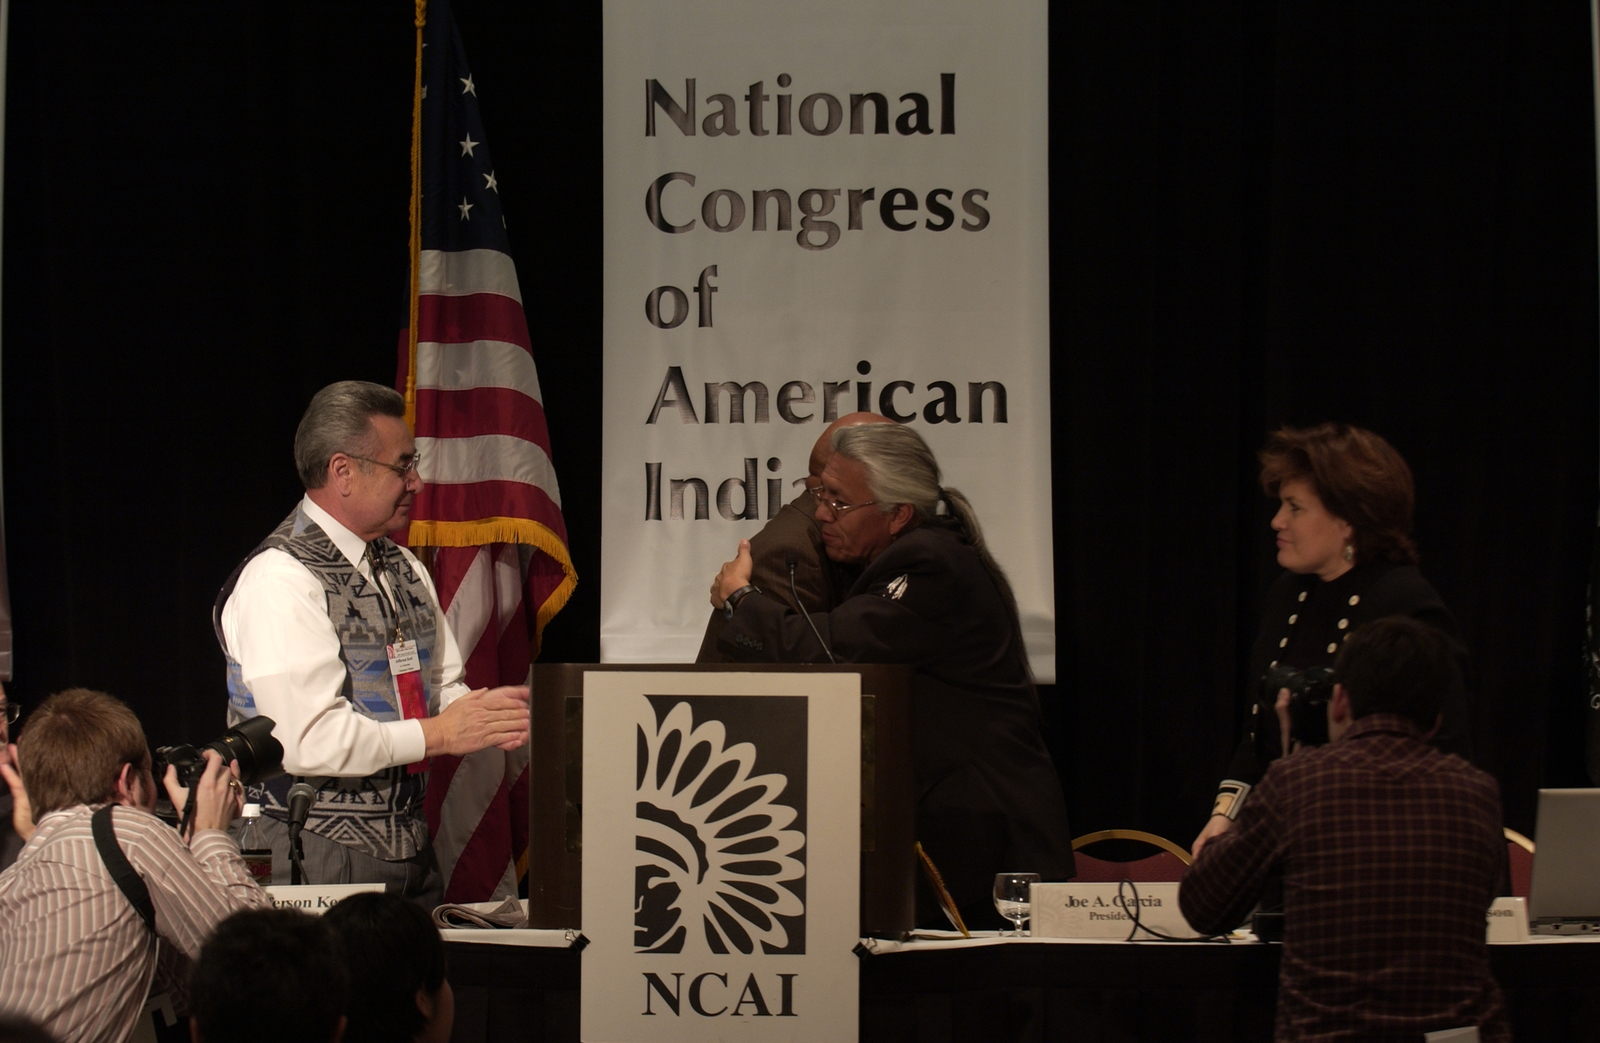 [Activities at the] National Congress of American Indians [conference] in Washington, D.C., including speech by Secretary Alphonso Jackson